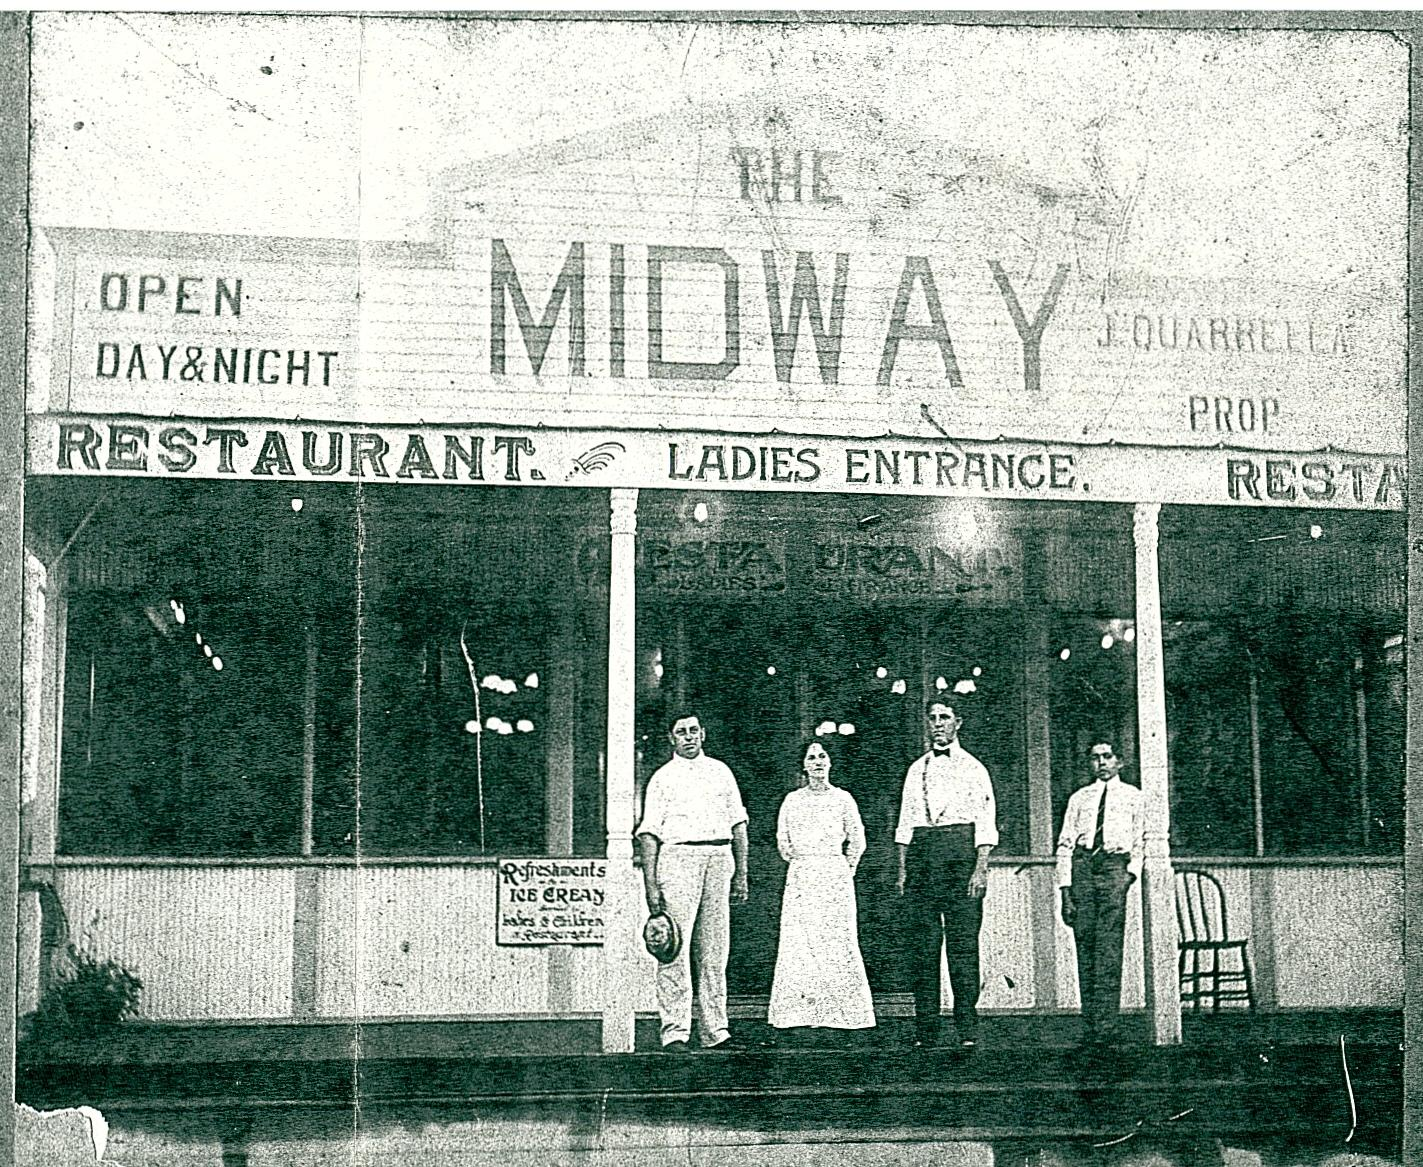 1914 - John Quarrella's Midway Restaurant at Milneburg